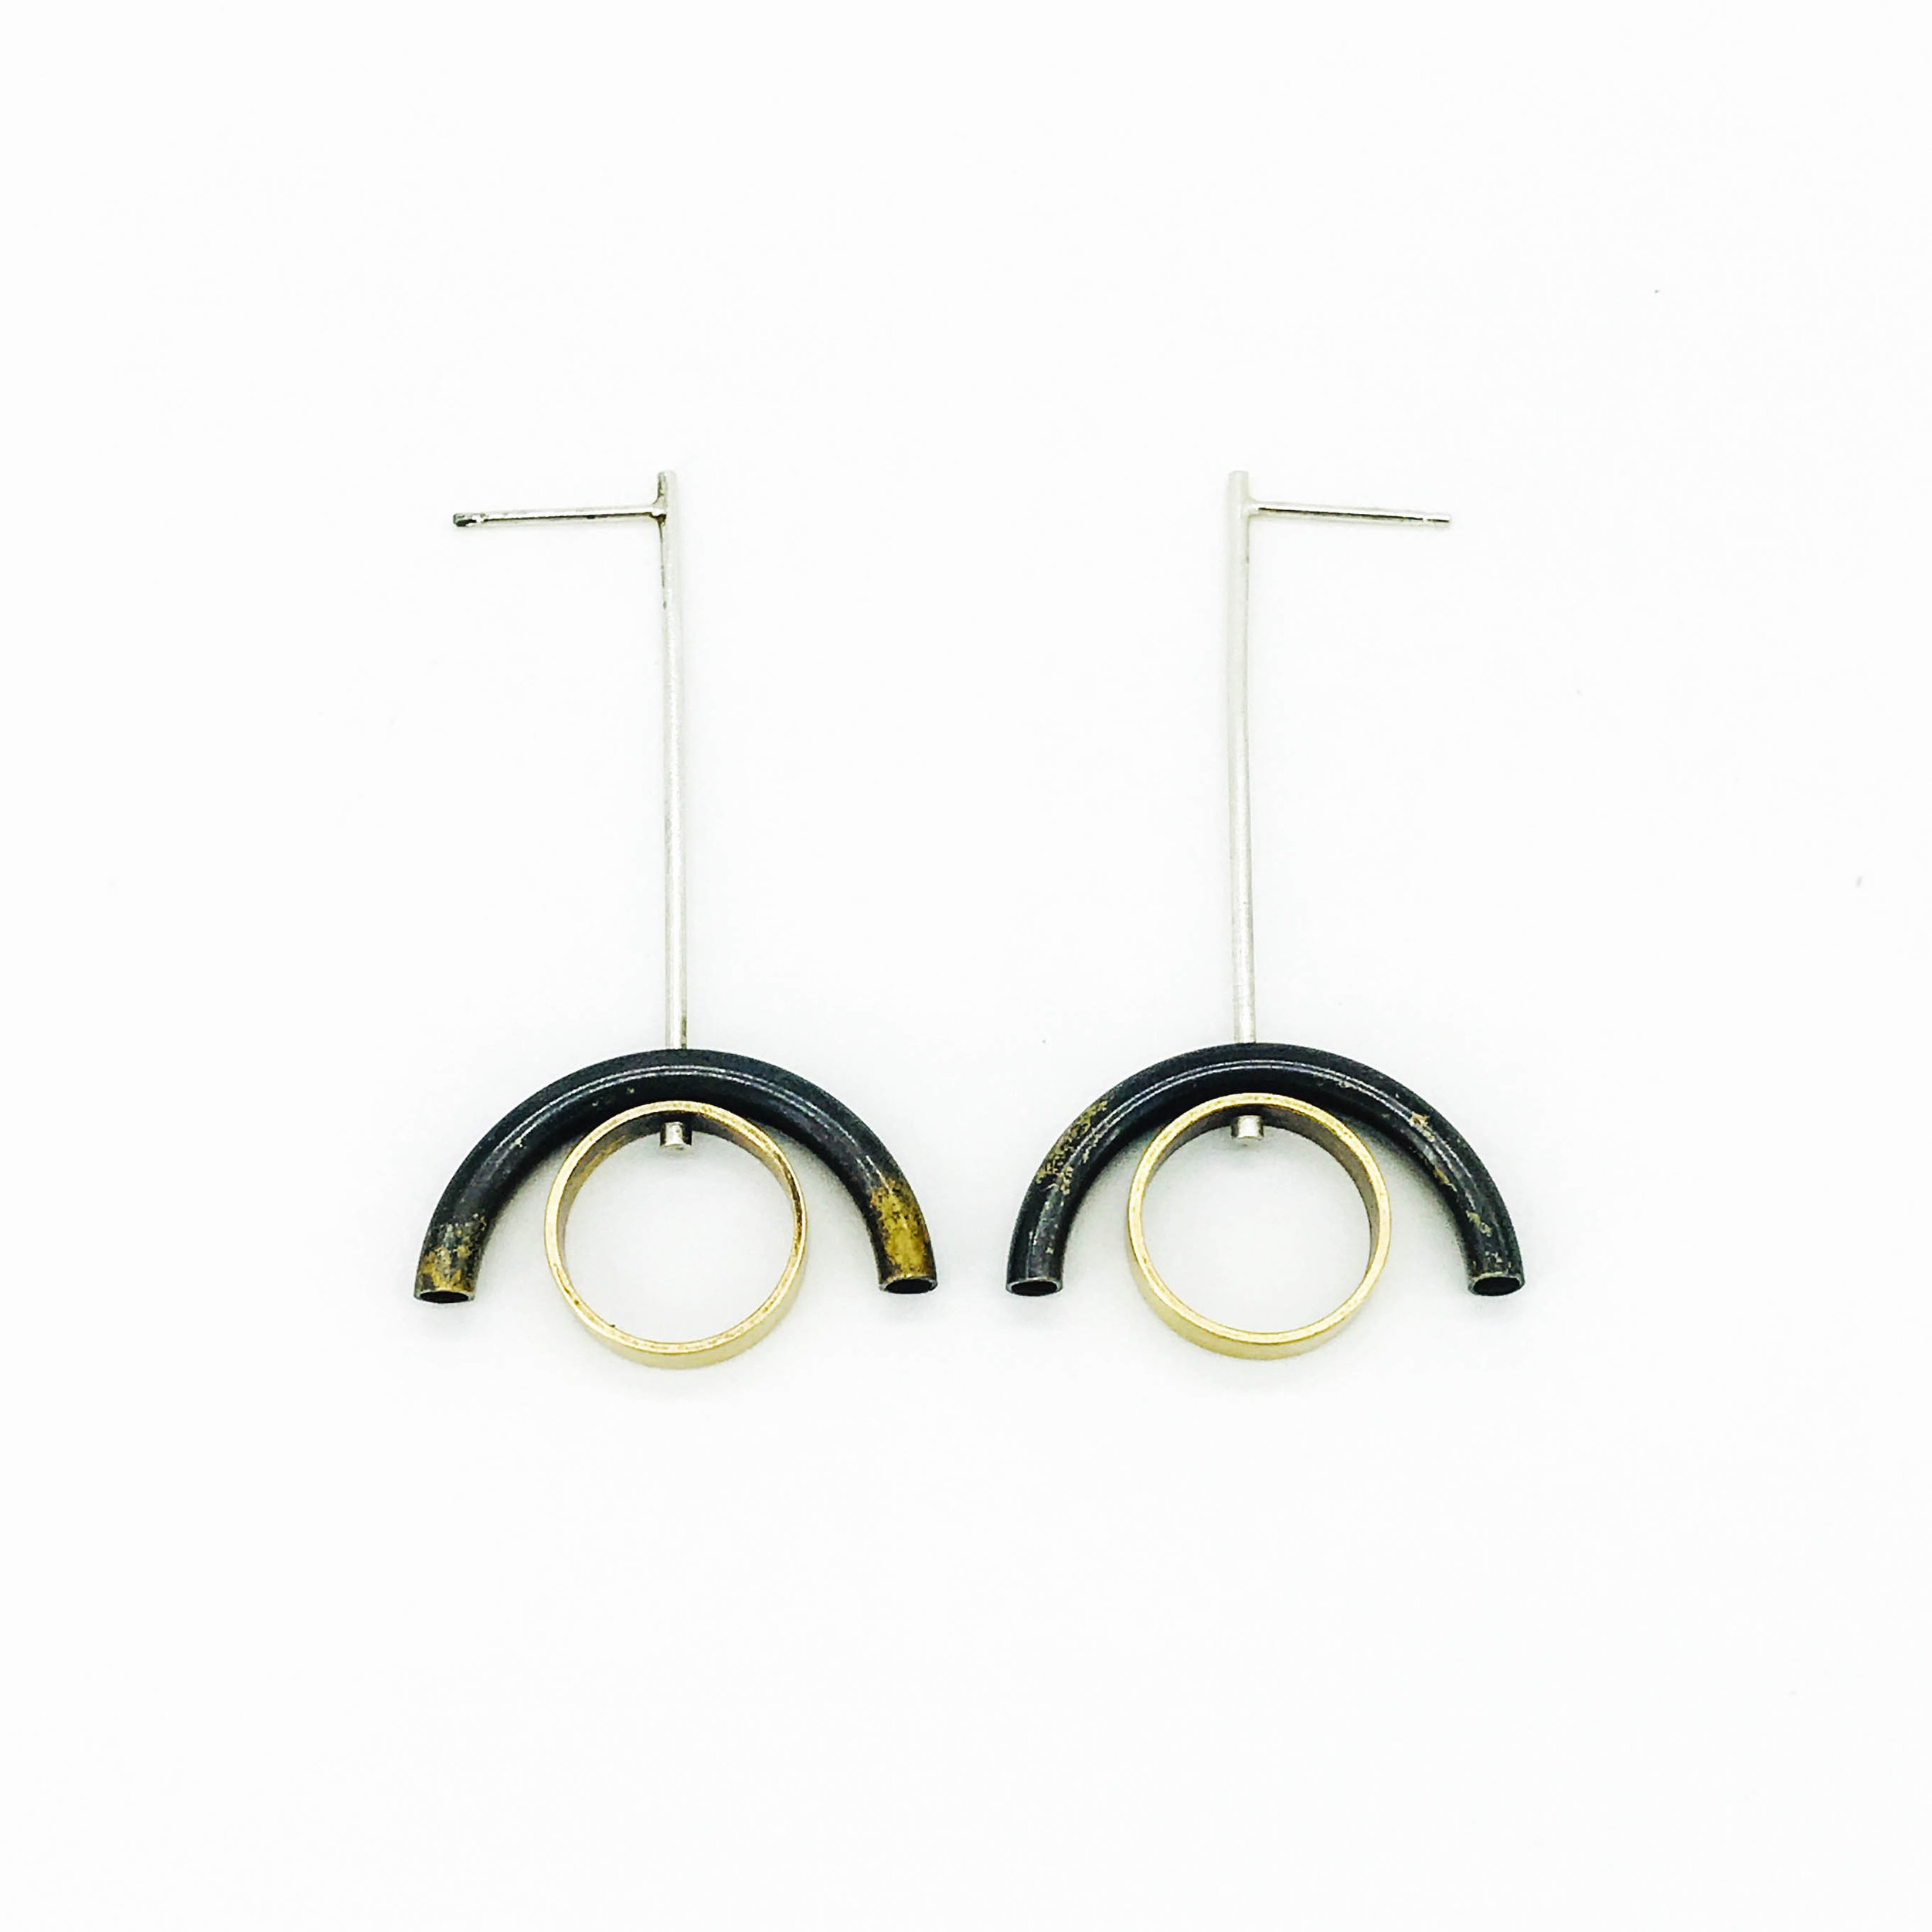 Tube spinner earrings, silver rod with oxidized brass tube and brass ring, $90